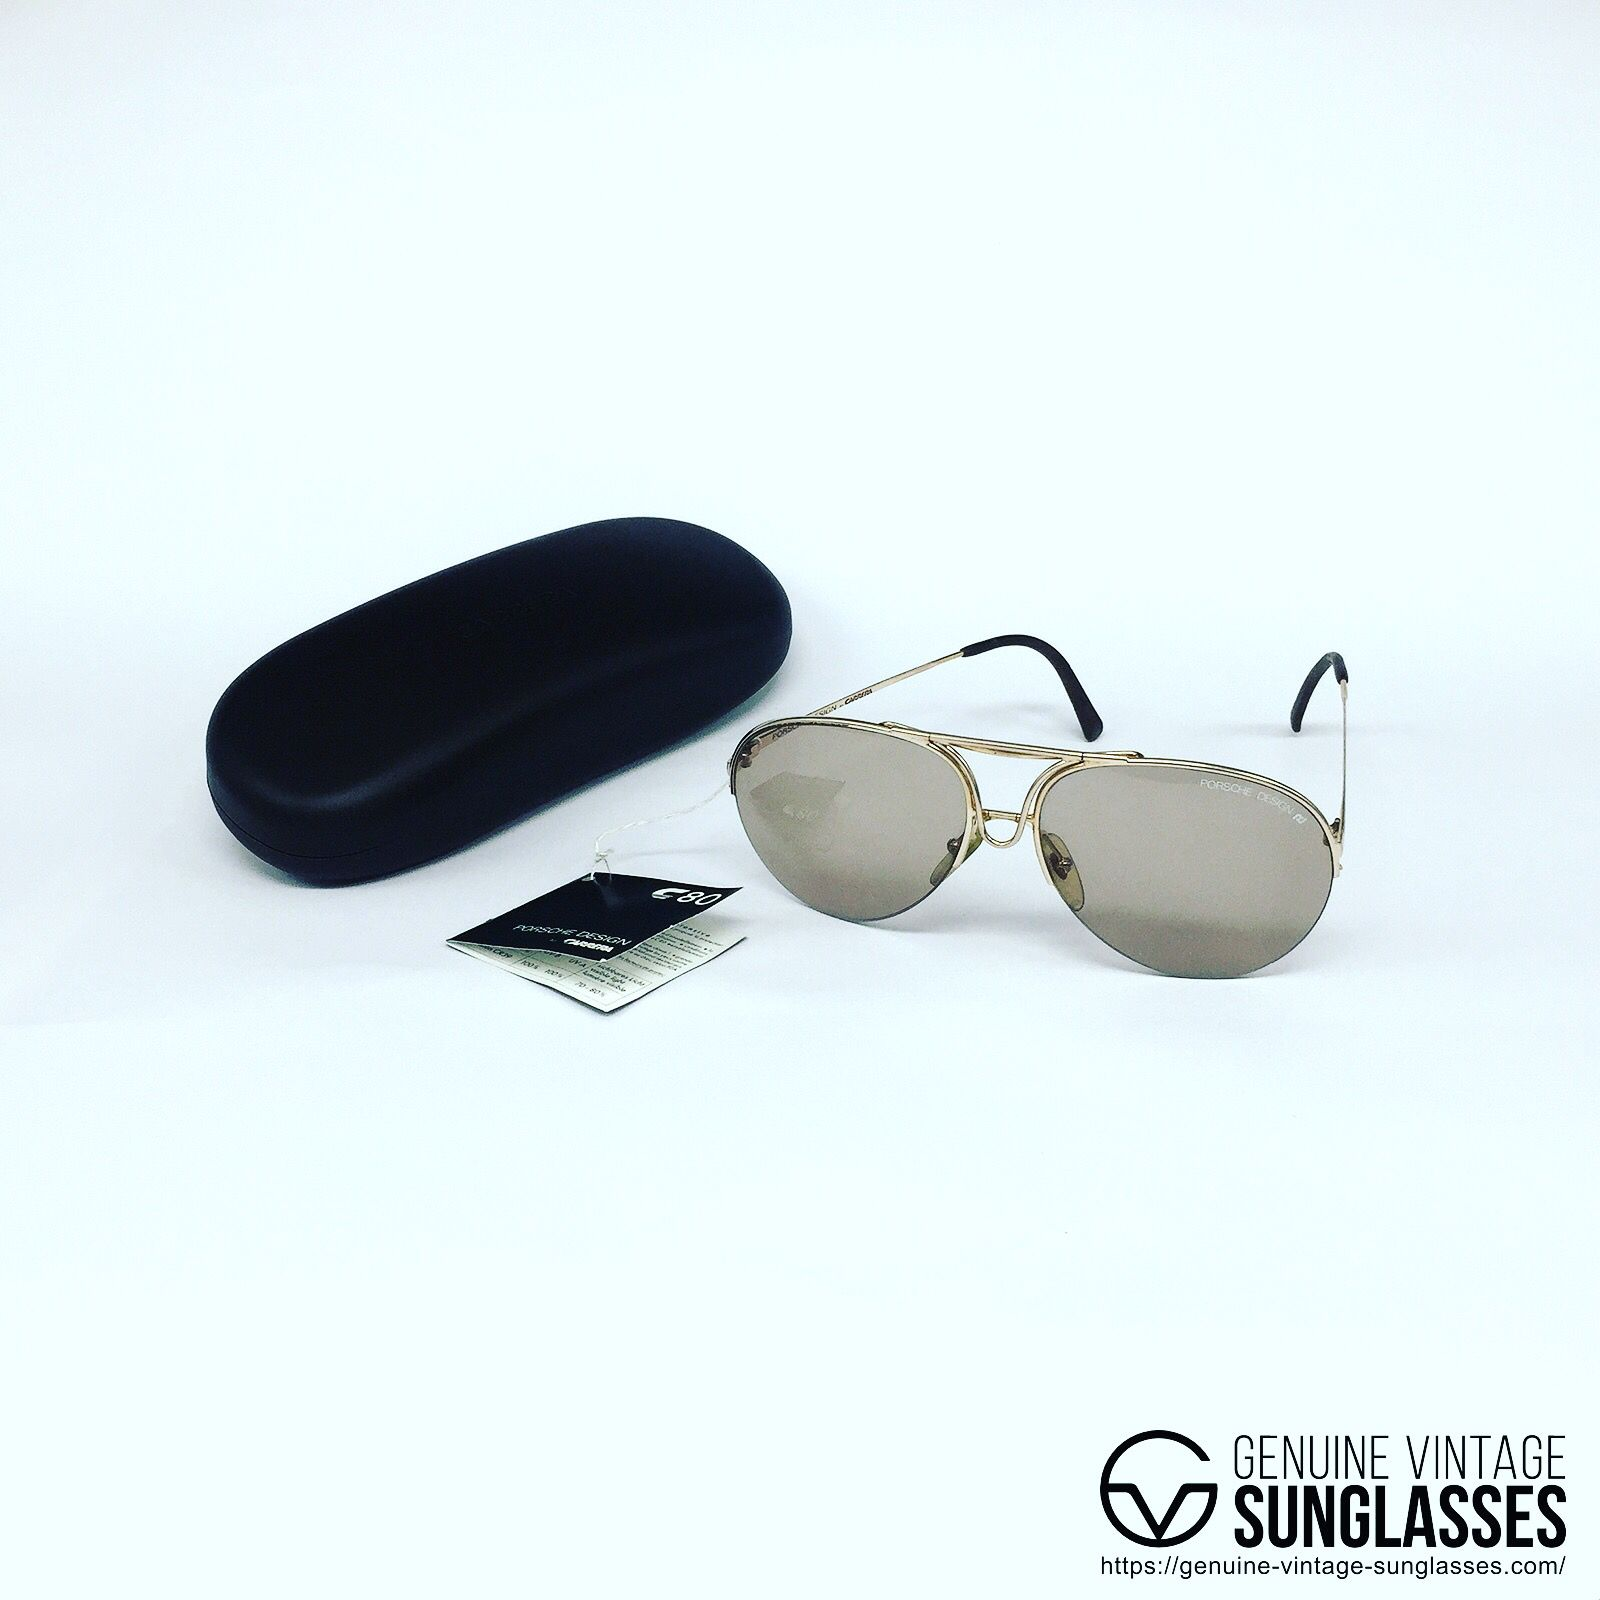 NOS Porsche Design by Carrera genuinevintagesunglasses